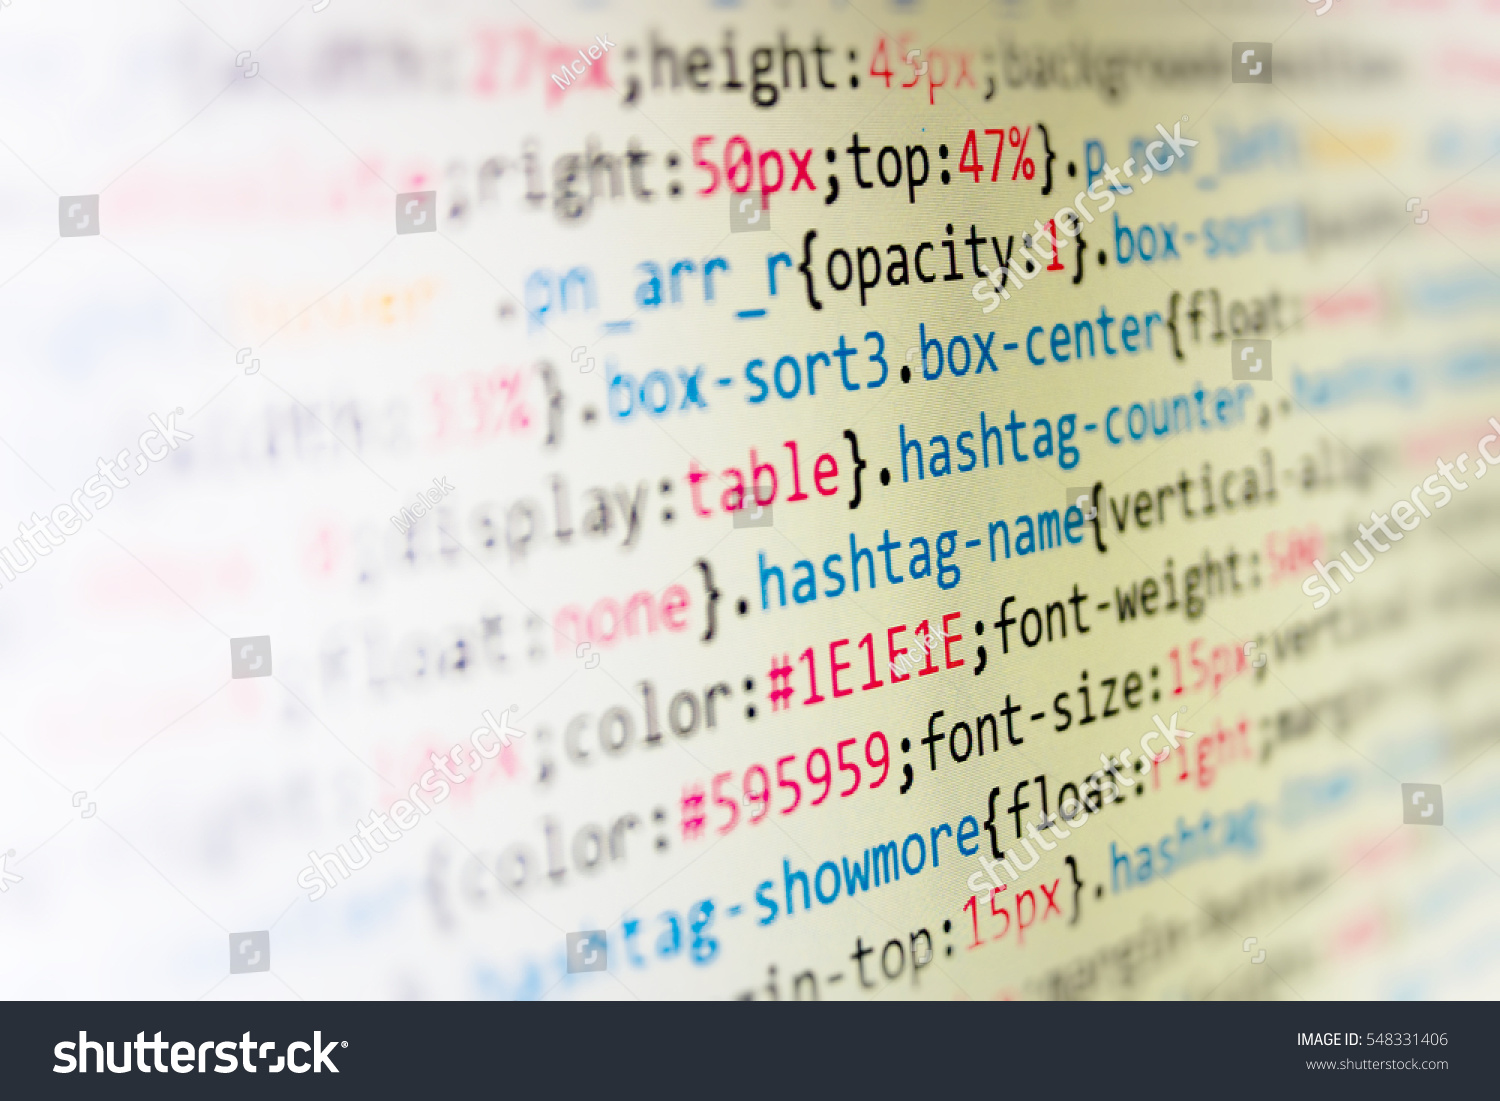 Css Javascript Html Usage Business Seo Stock Photo (Edit Now